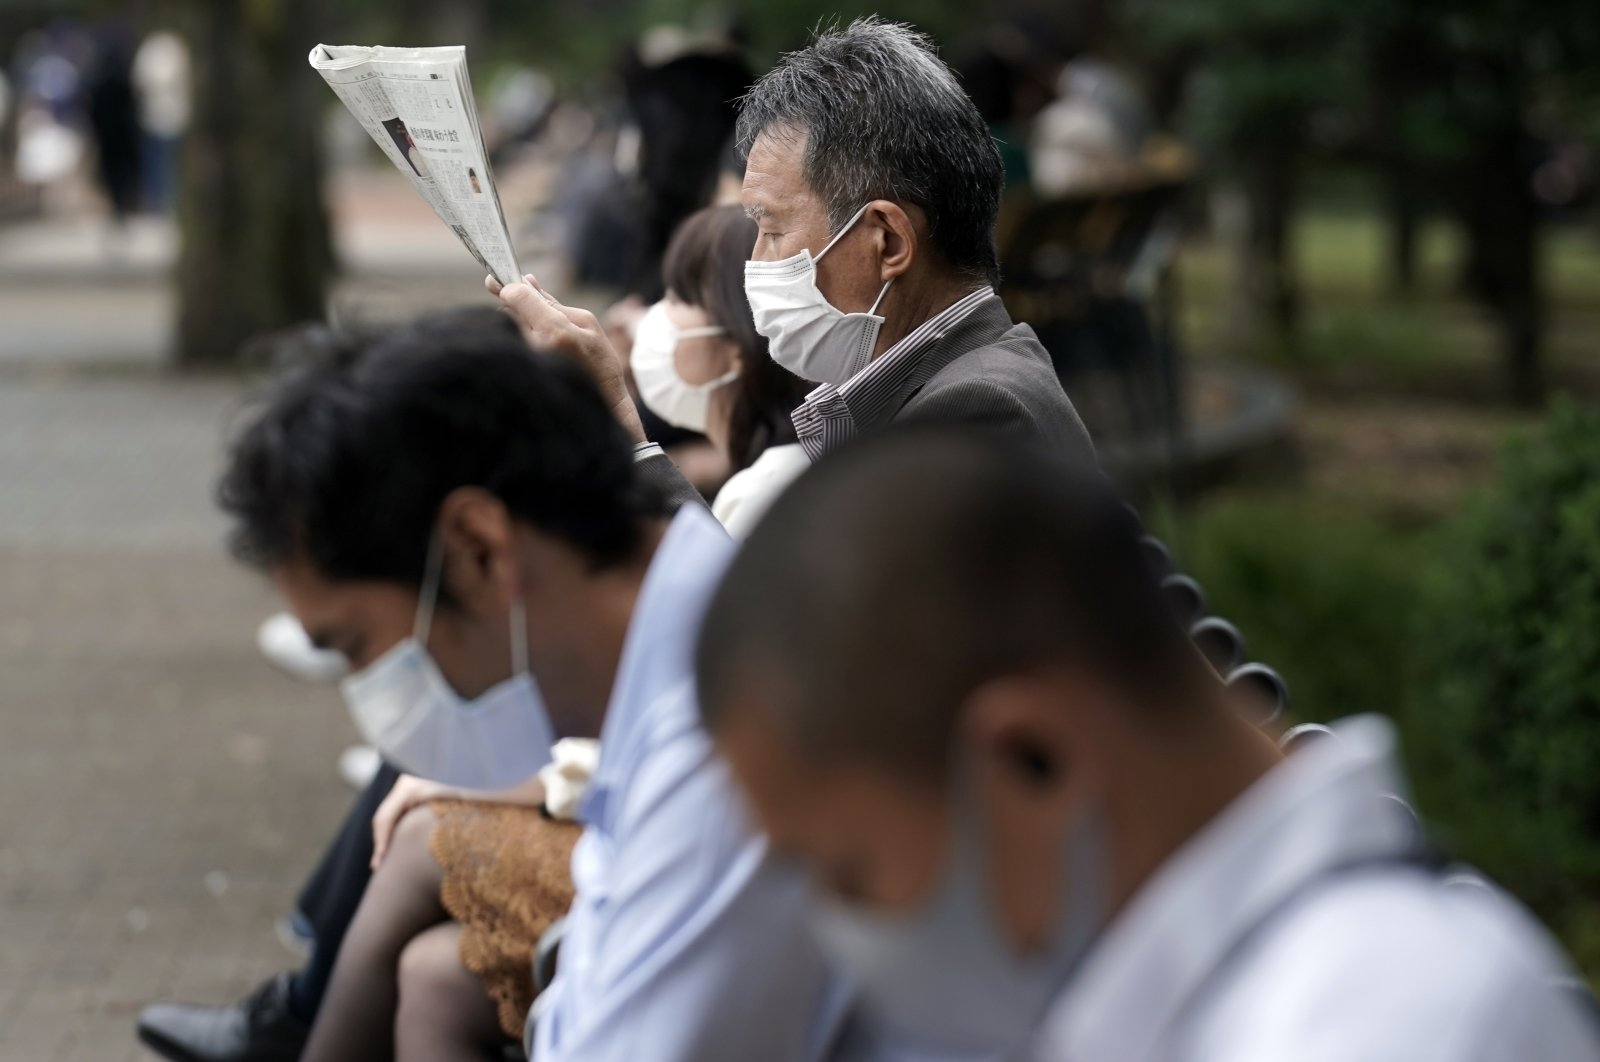 People wearing protective masks to help curb the spread of the coronavirus rest at a park, Oct. 14, 2020, in Tokyo. (AP Photo)